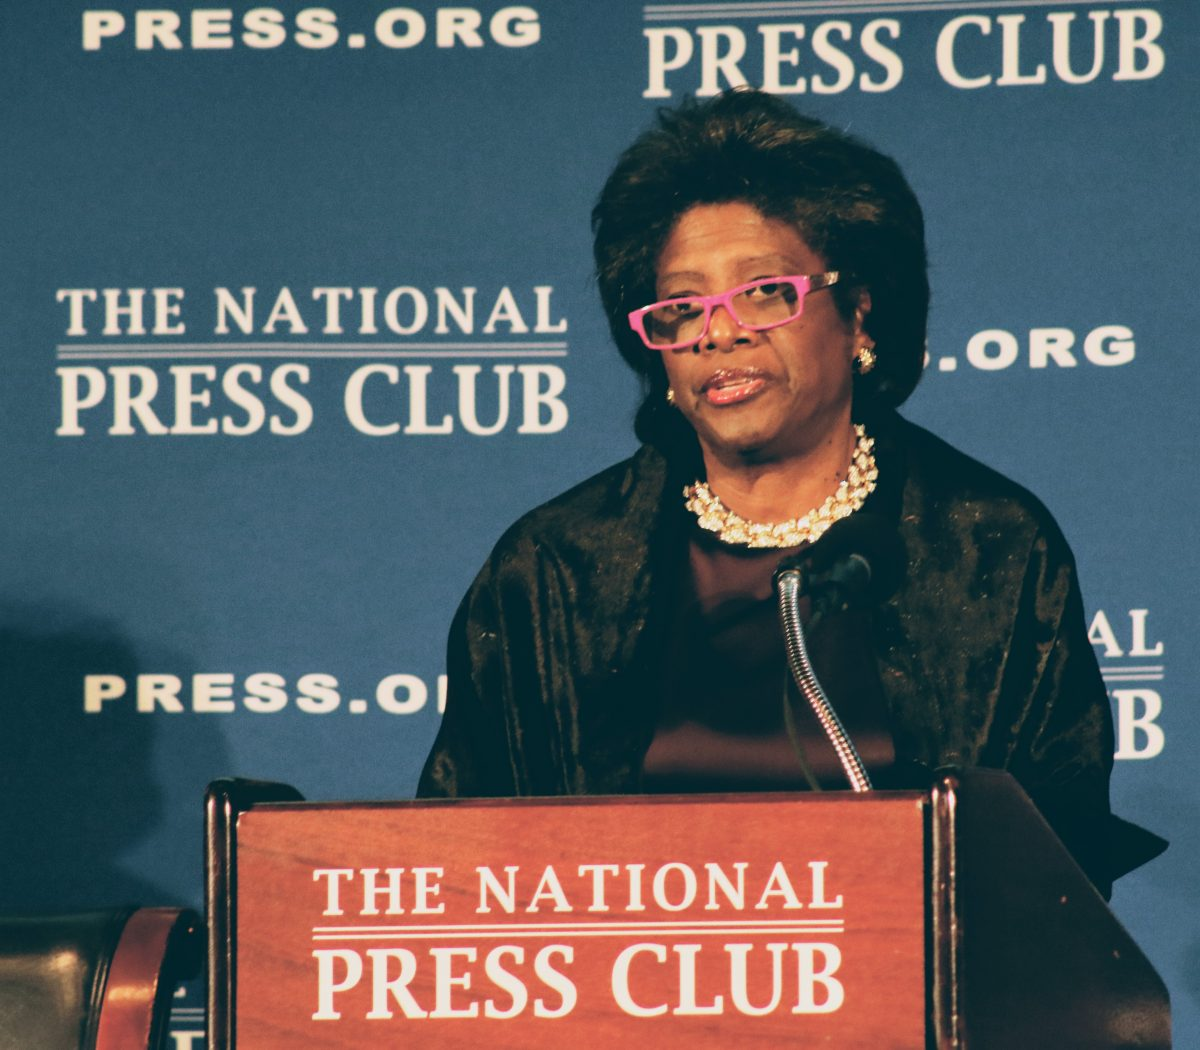 Sheila Cherry, 2004 National Press Club President and first African-American speaks to the occasion during the inauguration gala of Jeffrey Ballou as 110th President of the National Press Club on Saturday, Jan. 14. /Photo by Shevry Lassiter